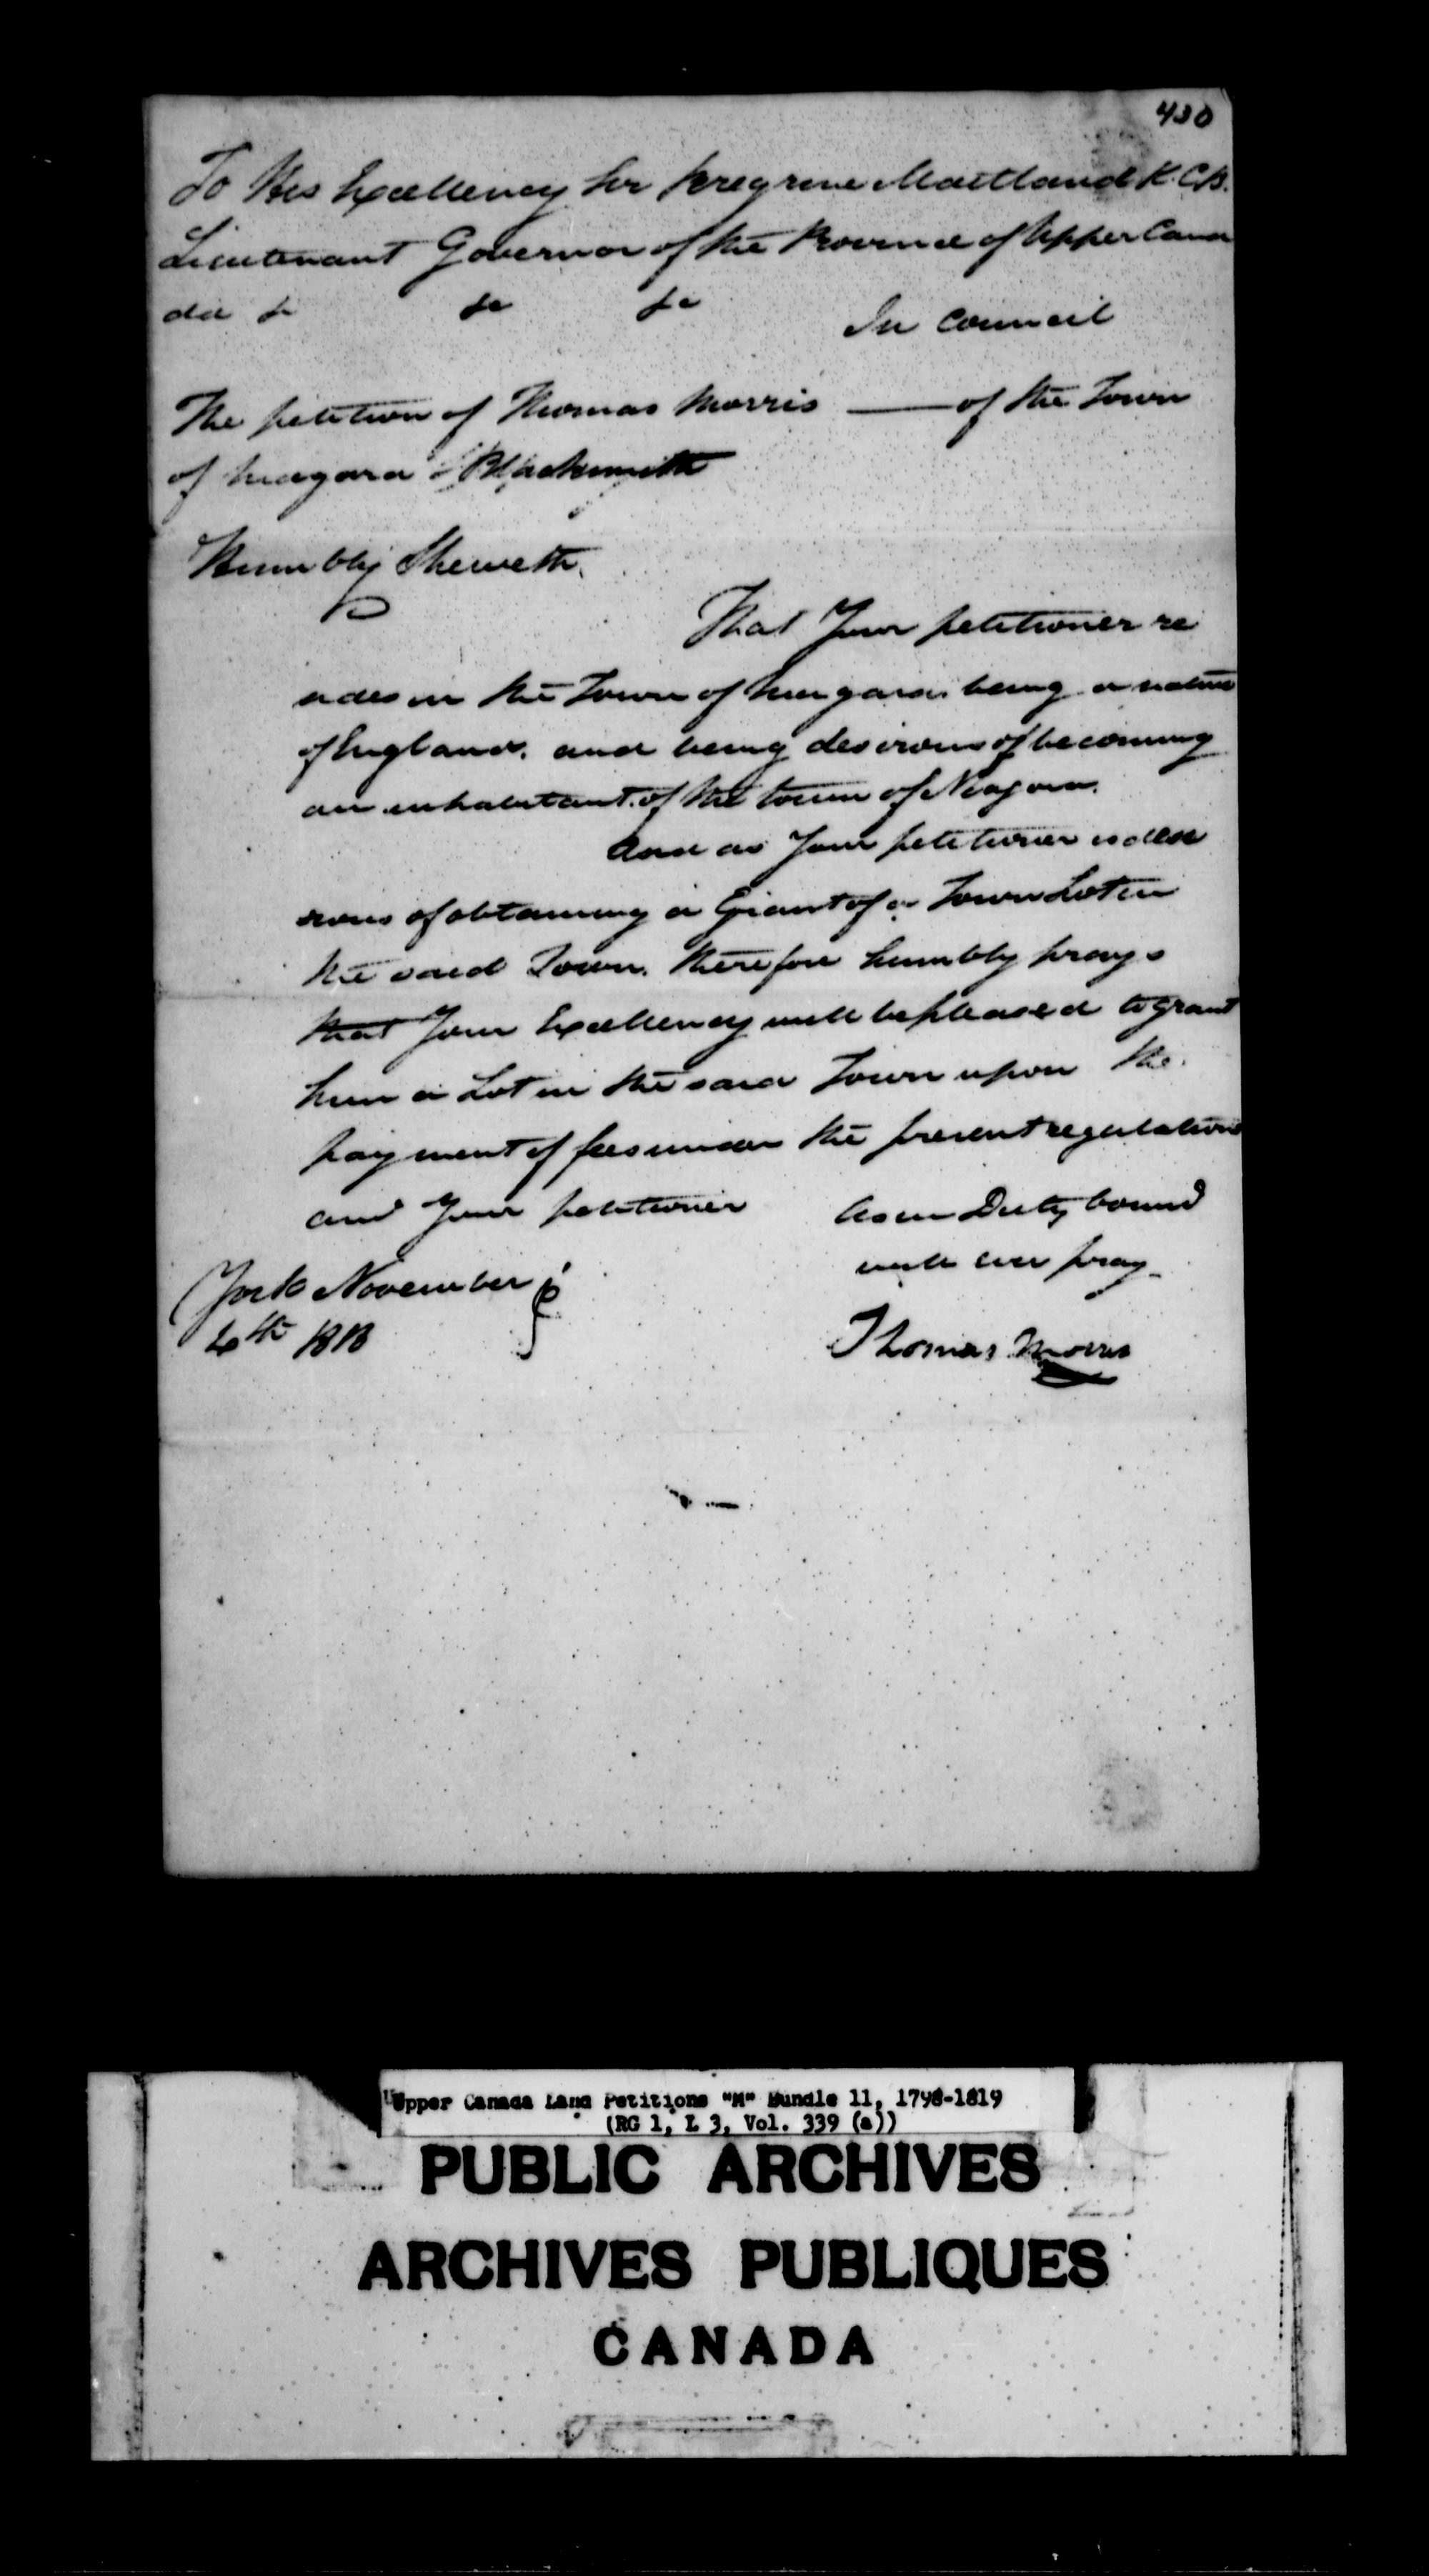 Title: Upper Canada Land Petitions (1763-1865) - Mikan Number: 205131 - Microform: c-2200